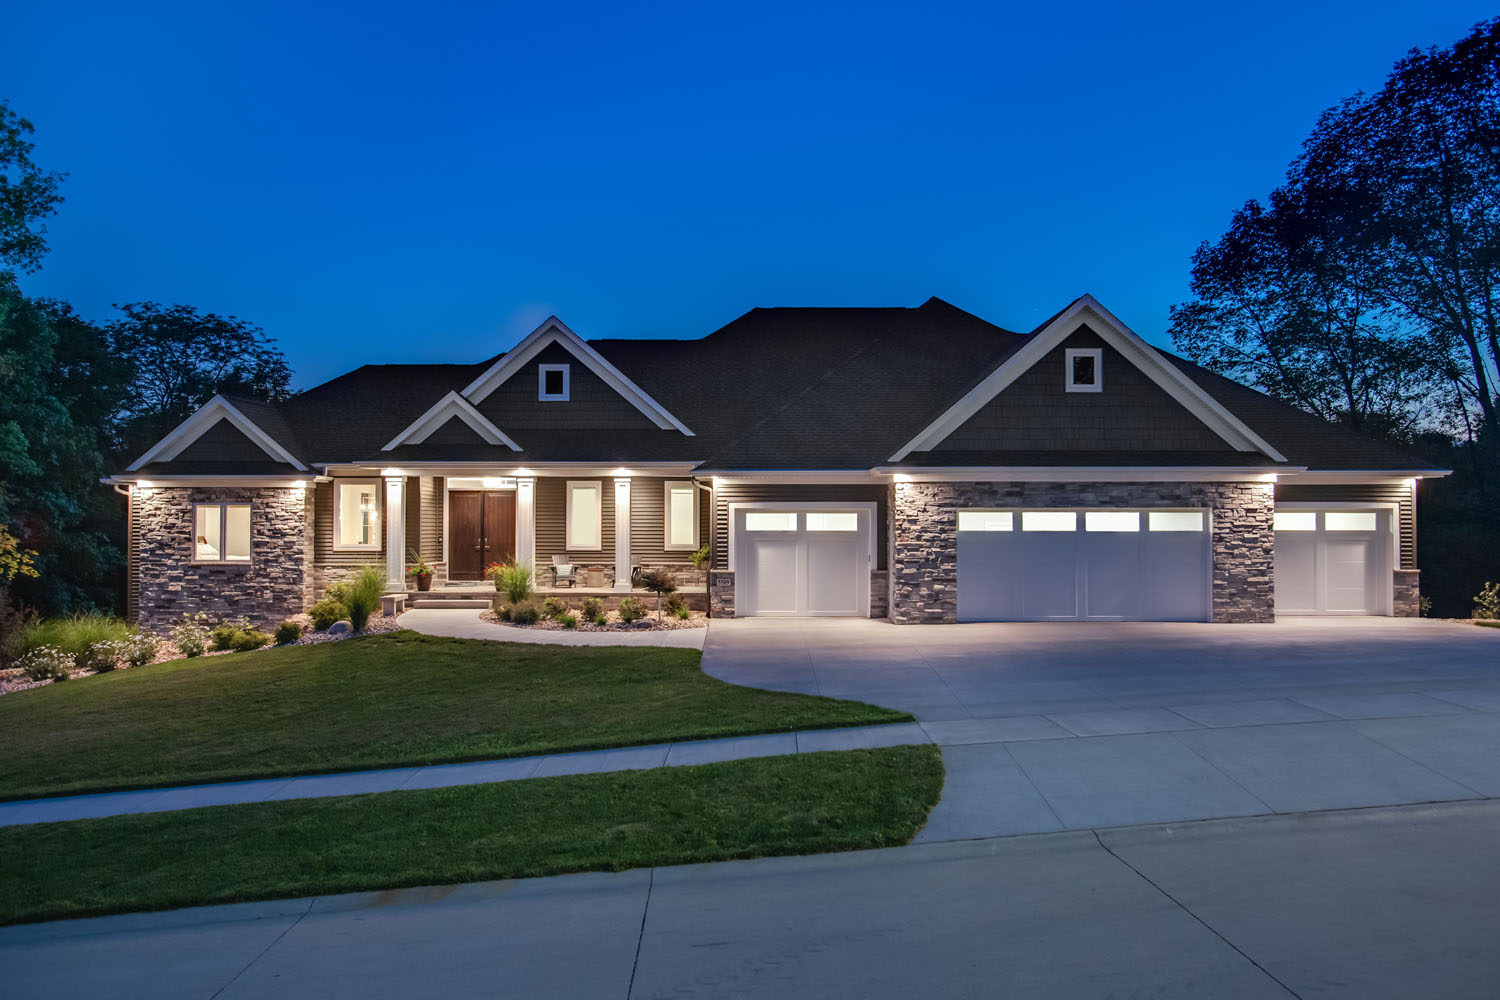 House Remodeling Contractors Near Me Crdr Homes Cedar Rapids Ia Custom Home Builder Remodeling